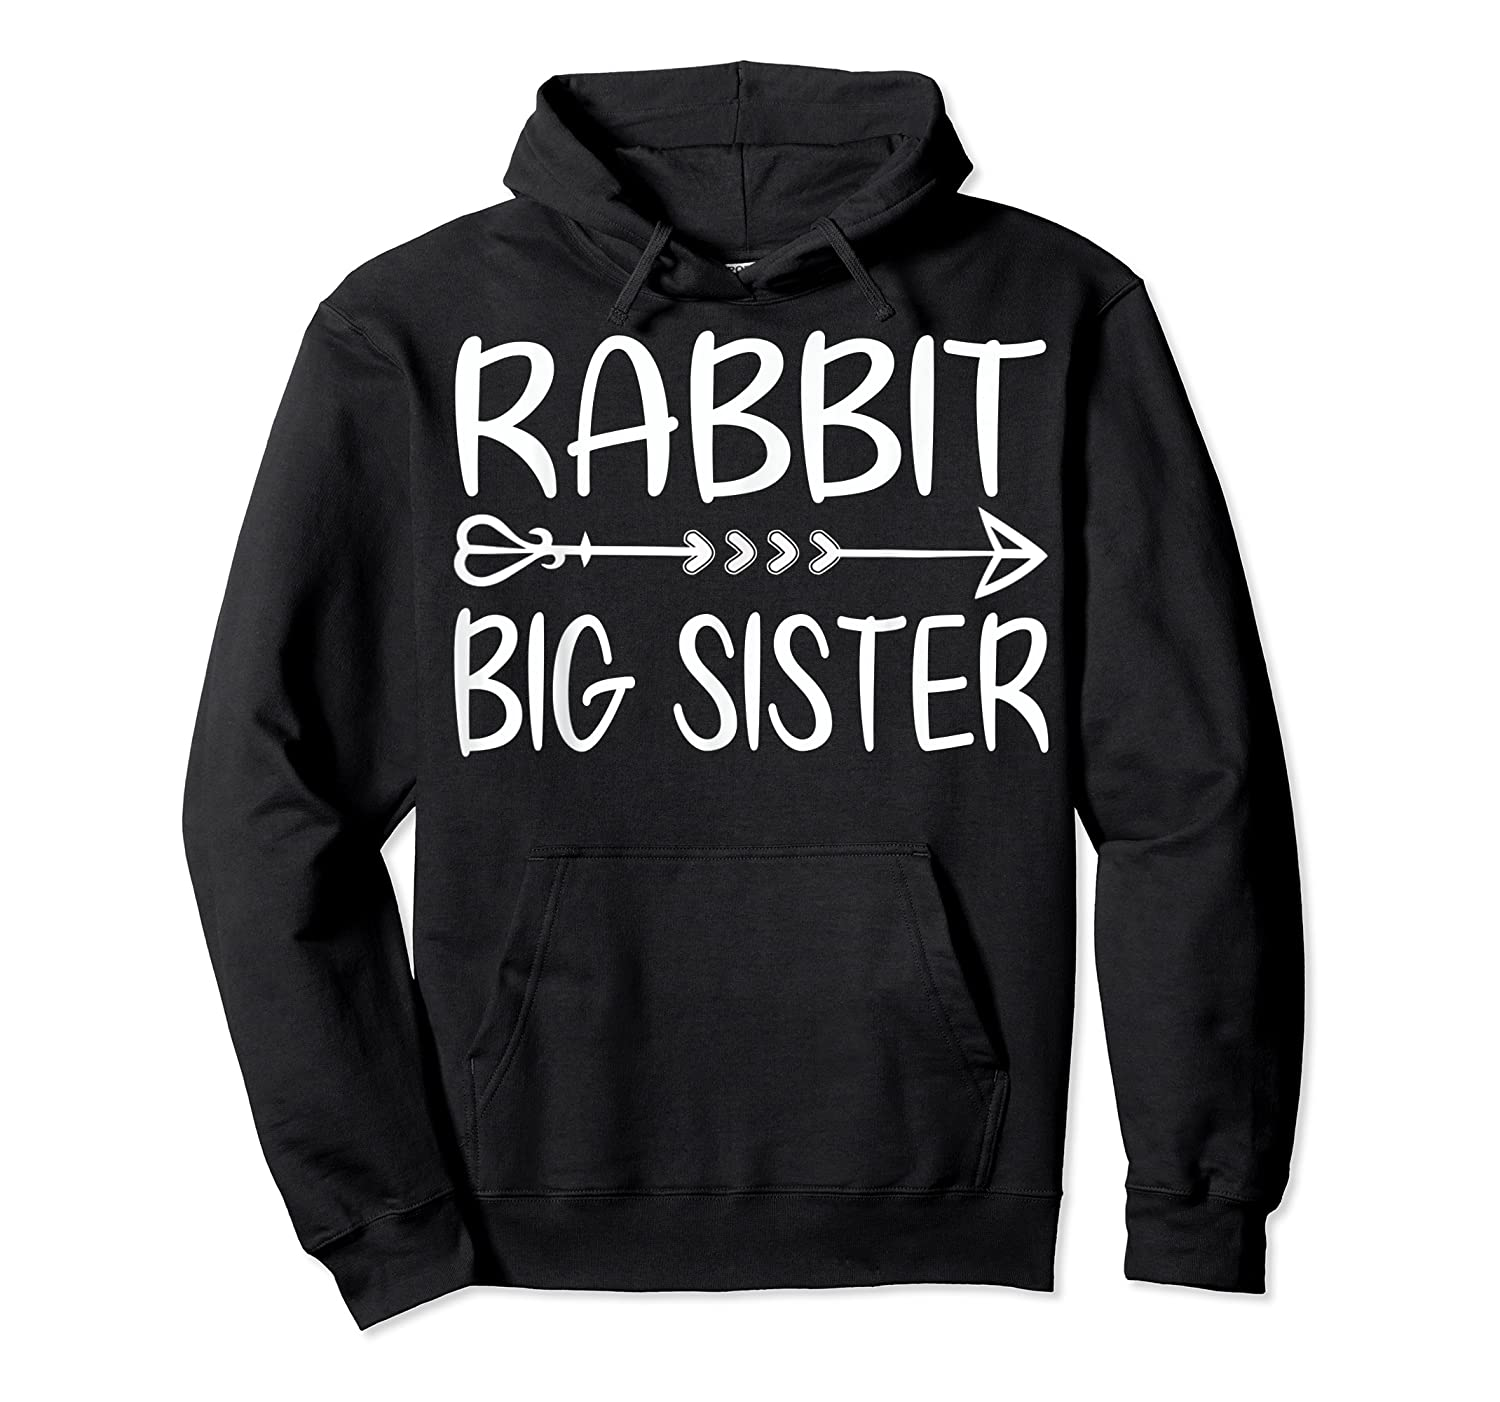 Cute Rabbit Big Sister Shirt I M Going To Be A Big Sister T Shirt Unisex Pullover Hoodie